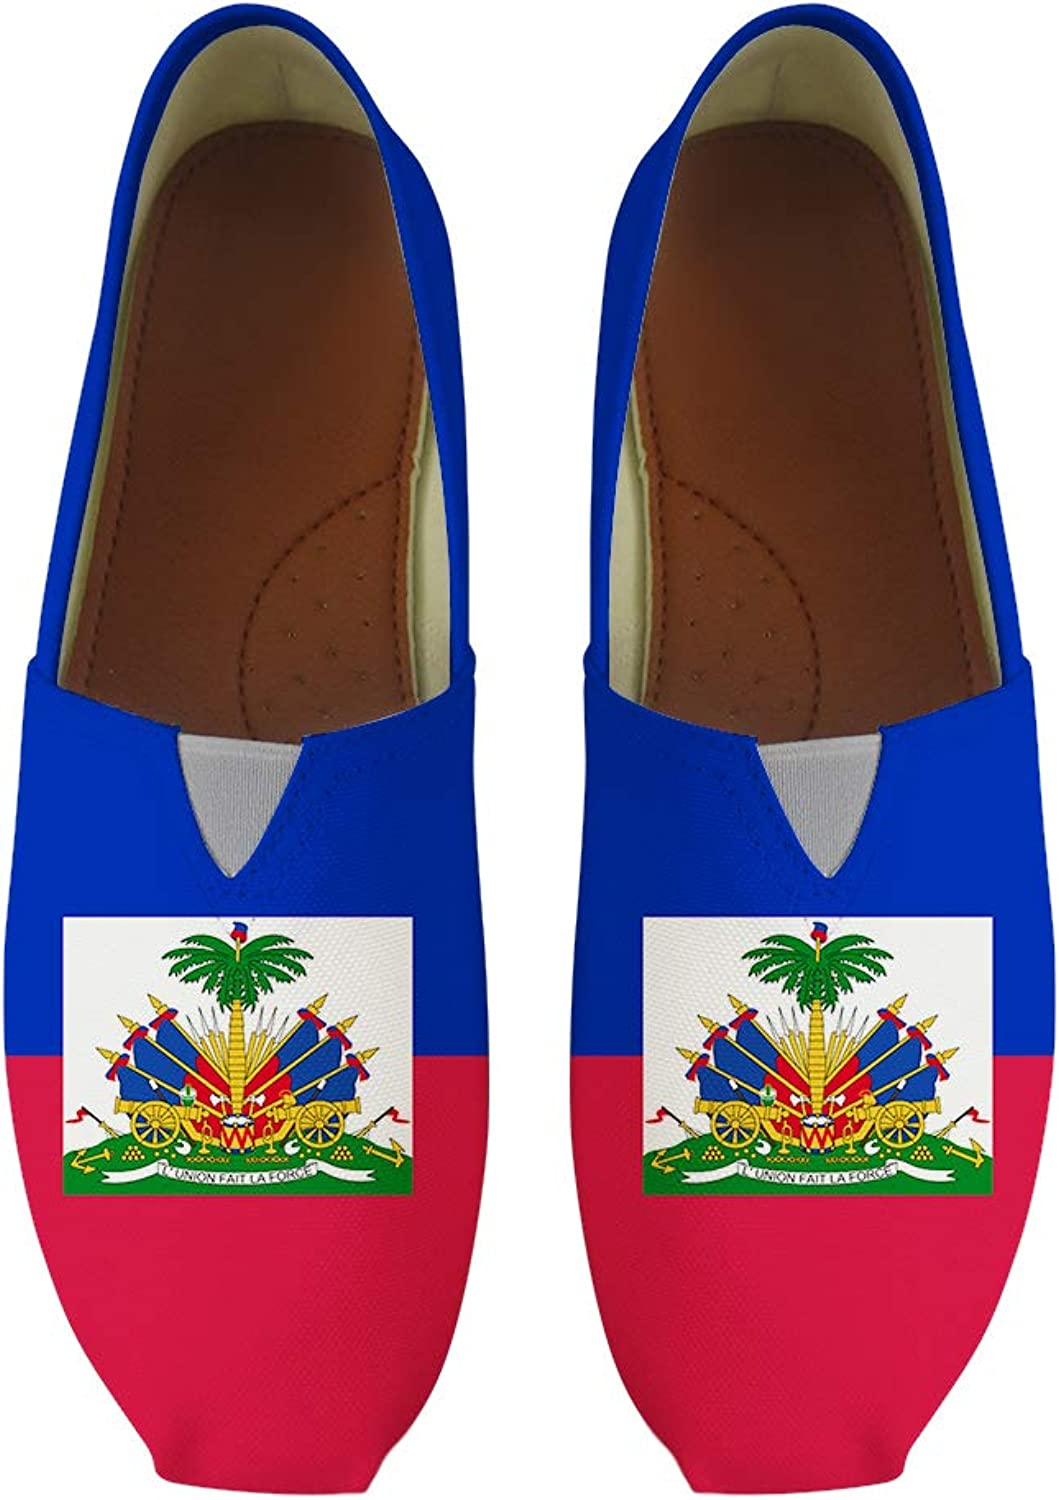 Owaheson Classic Canvas Slip-On Lightweight Driving shoes Soft Penny Loafers Men Women Haiti Flag